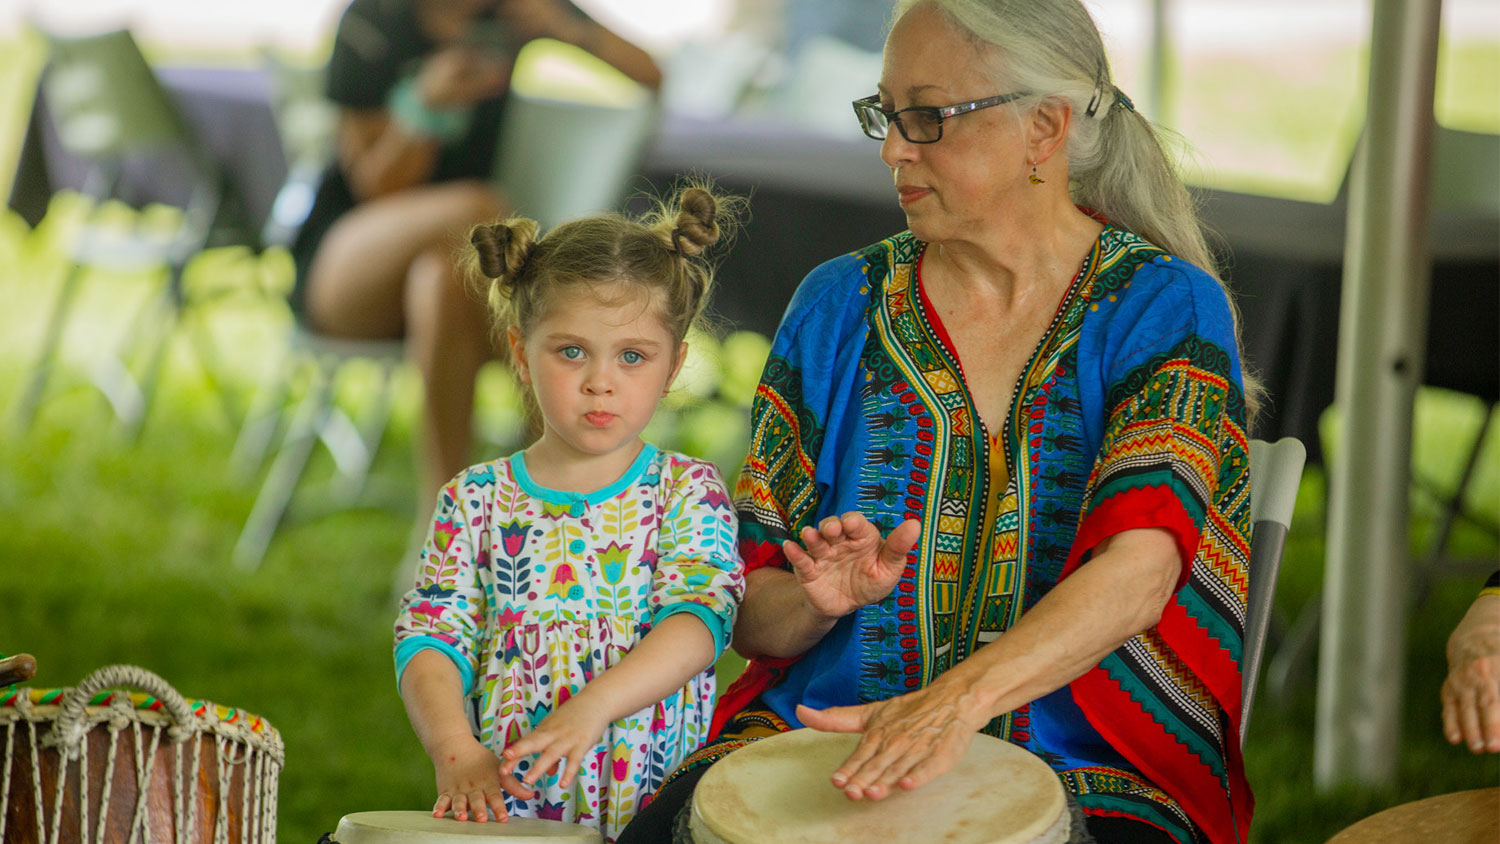 Adult and child playing conga drums